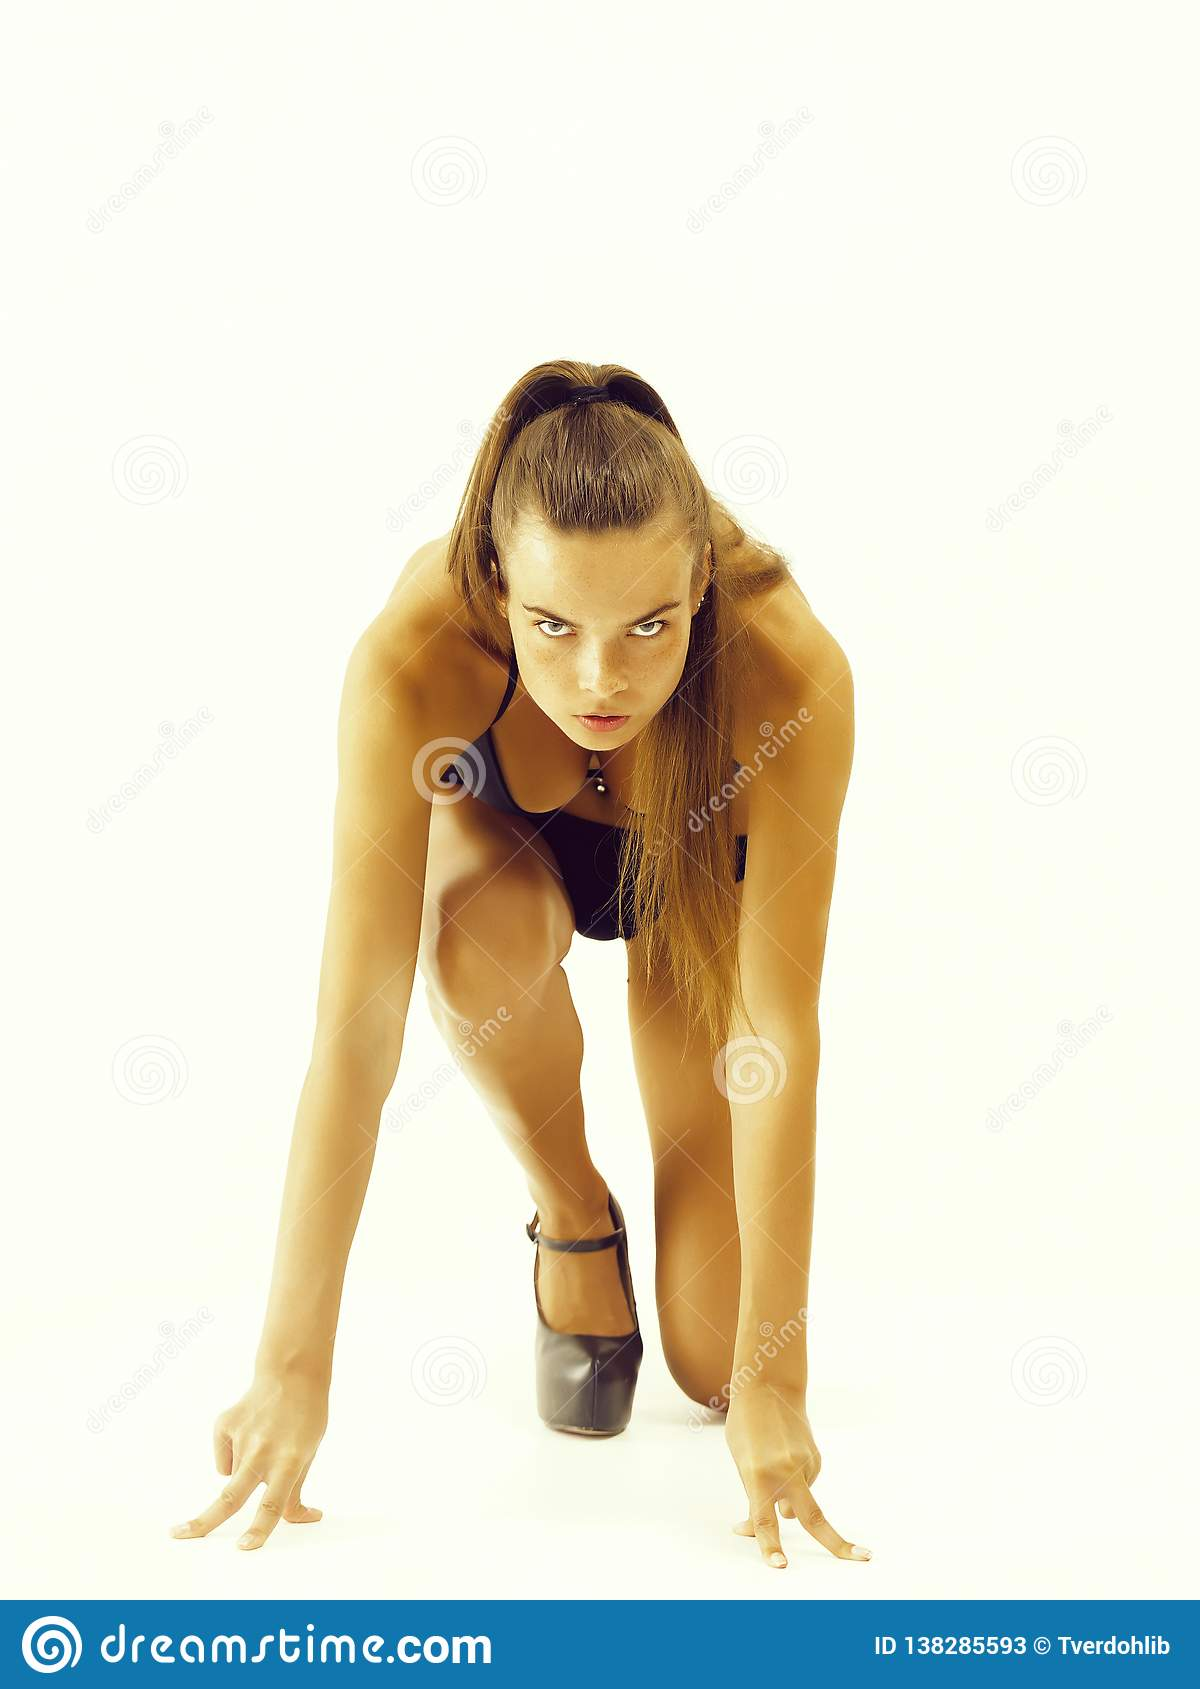 woman getting ready to run in starting position